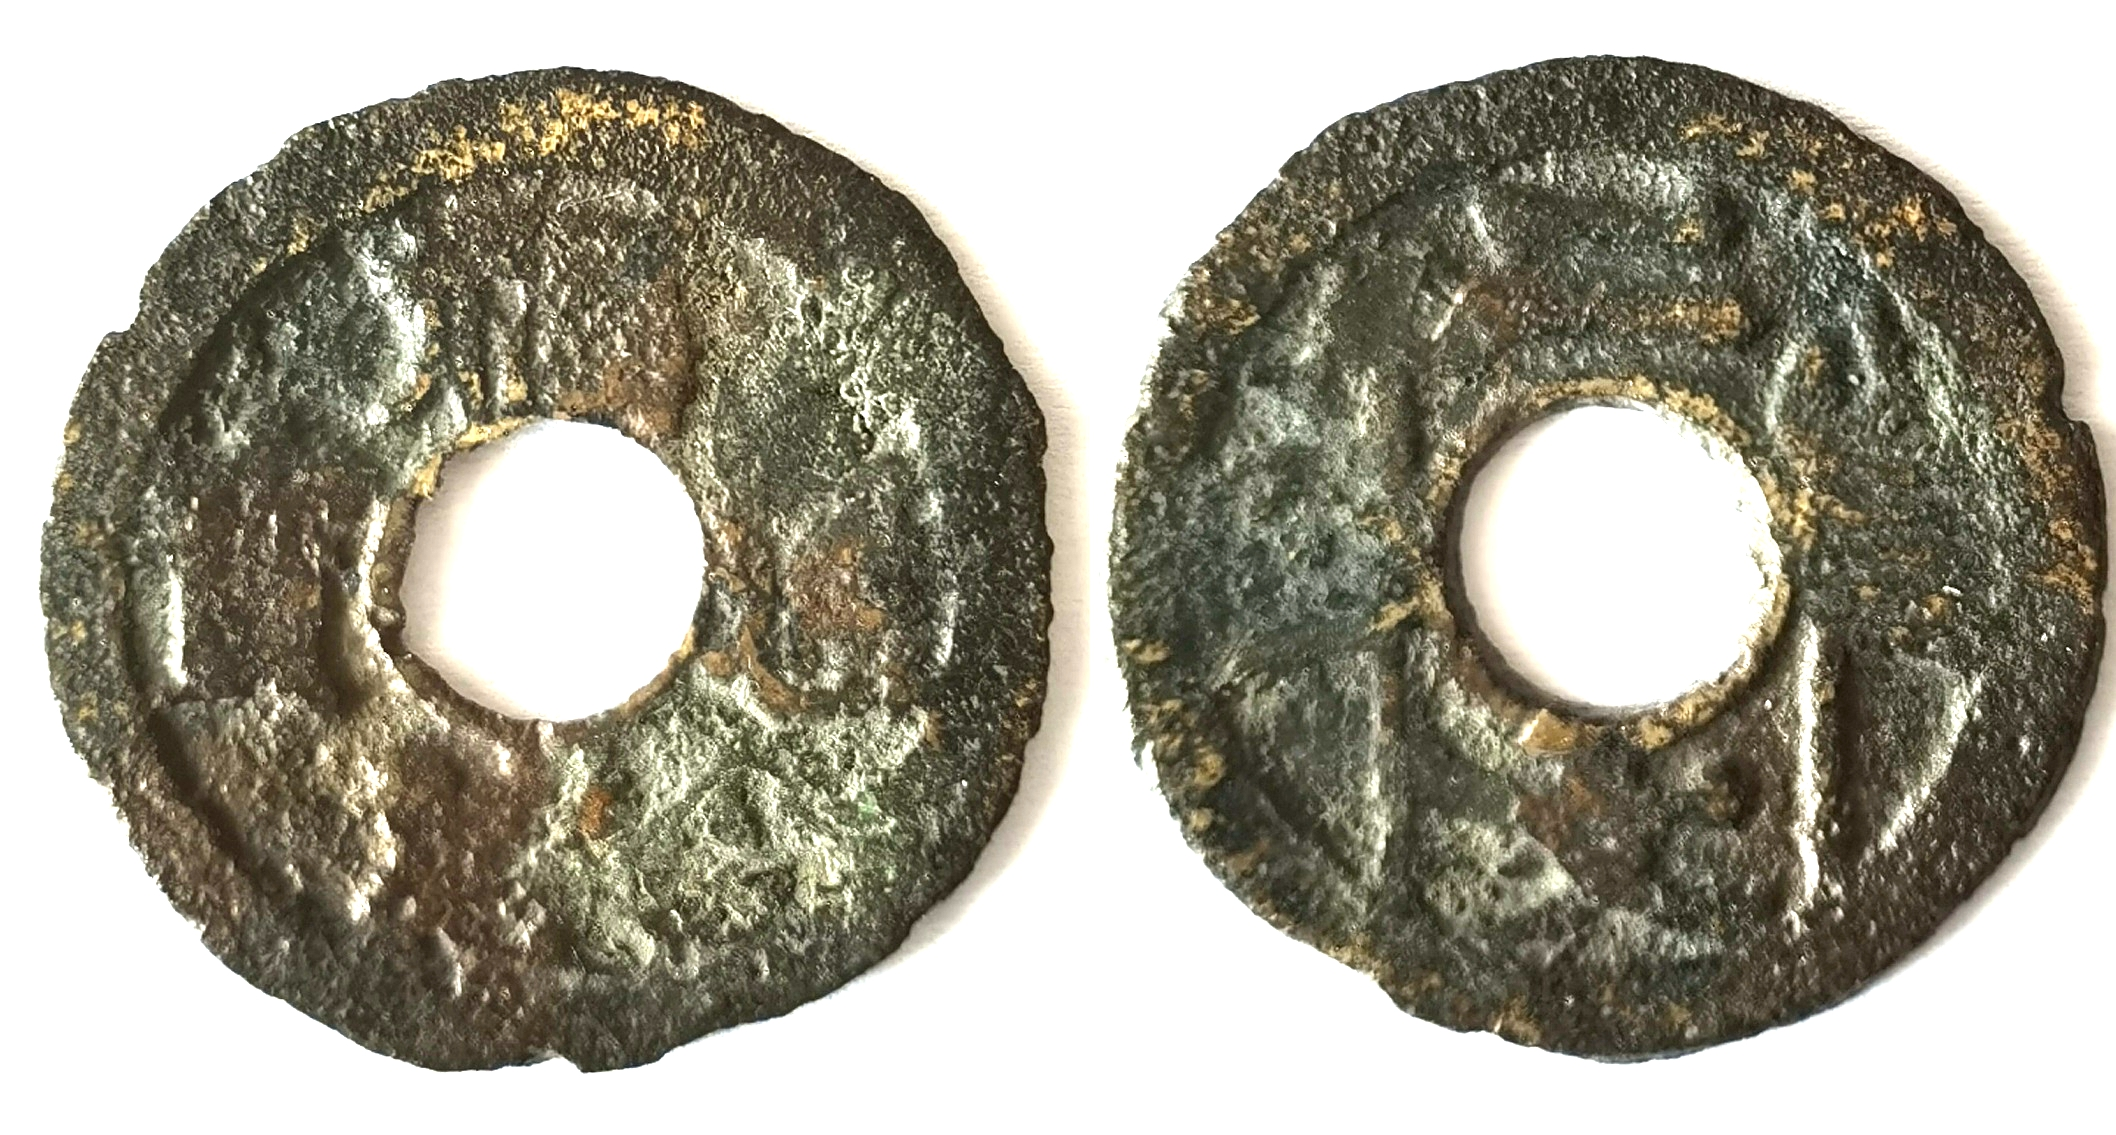 K5100, Fu-Chien T'ung-Pao Coin (Fujian Tong-Bao), Republic China AD 1912